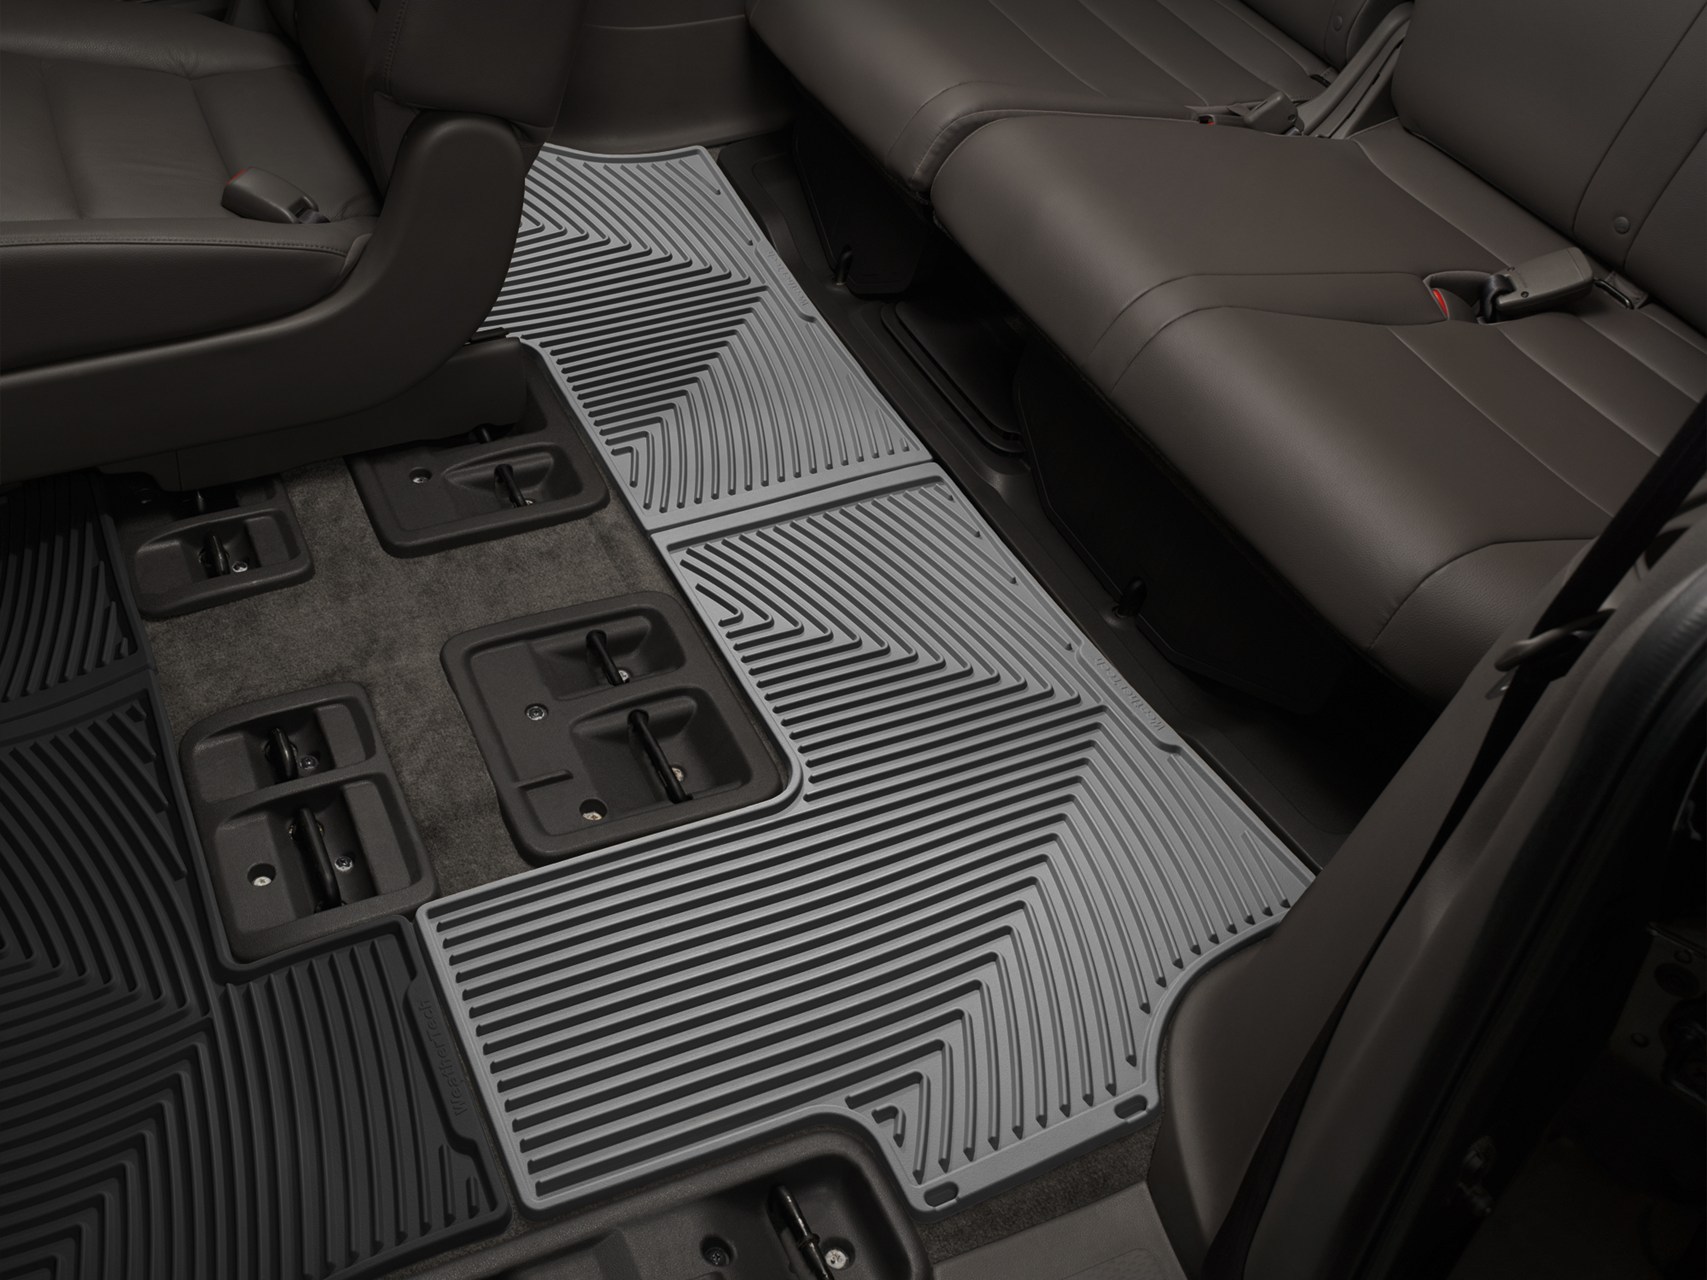 trd of tag toyota floor mats access new truck cab models carpet pro blog tundra